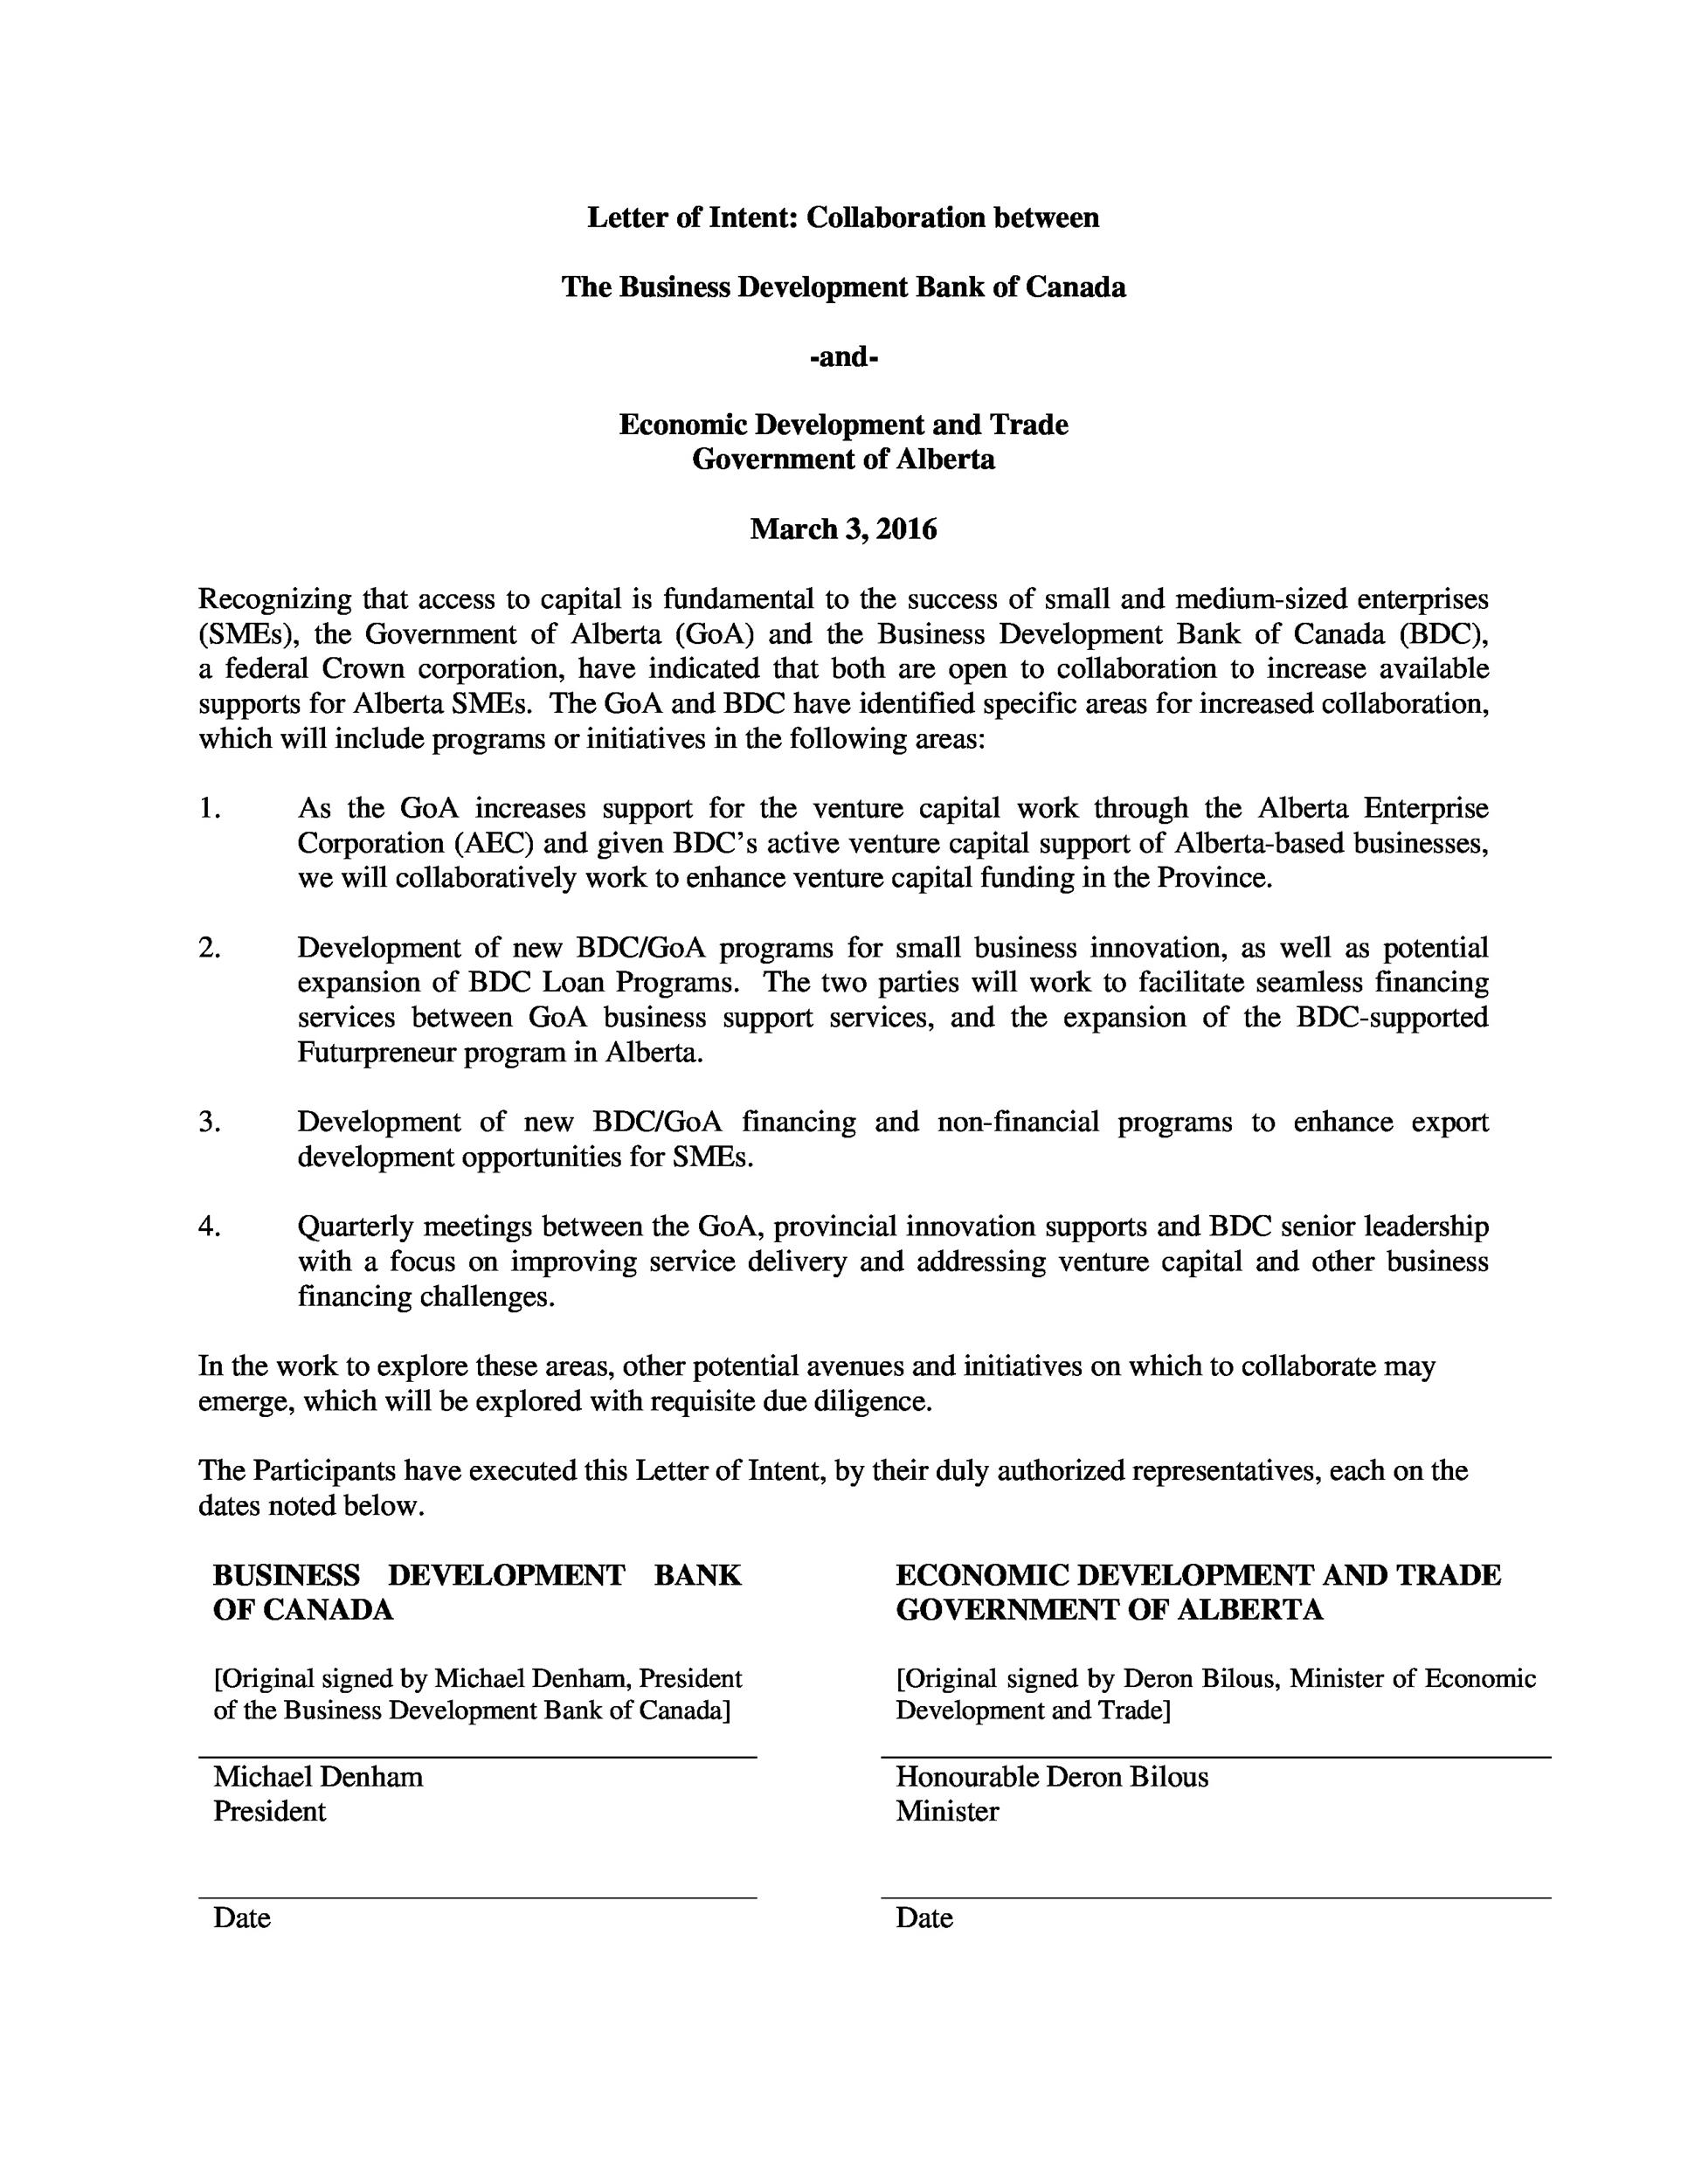 printable letter of intent 09